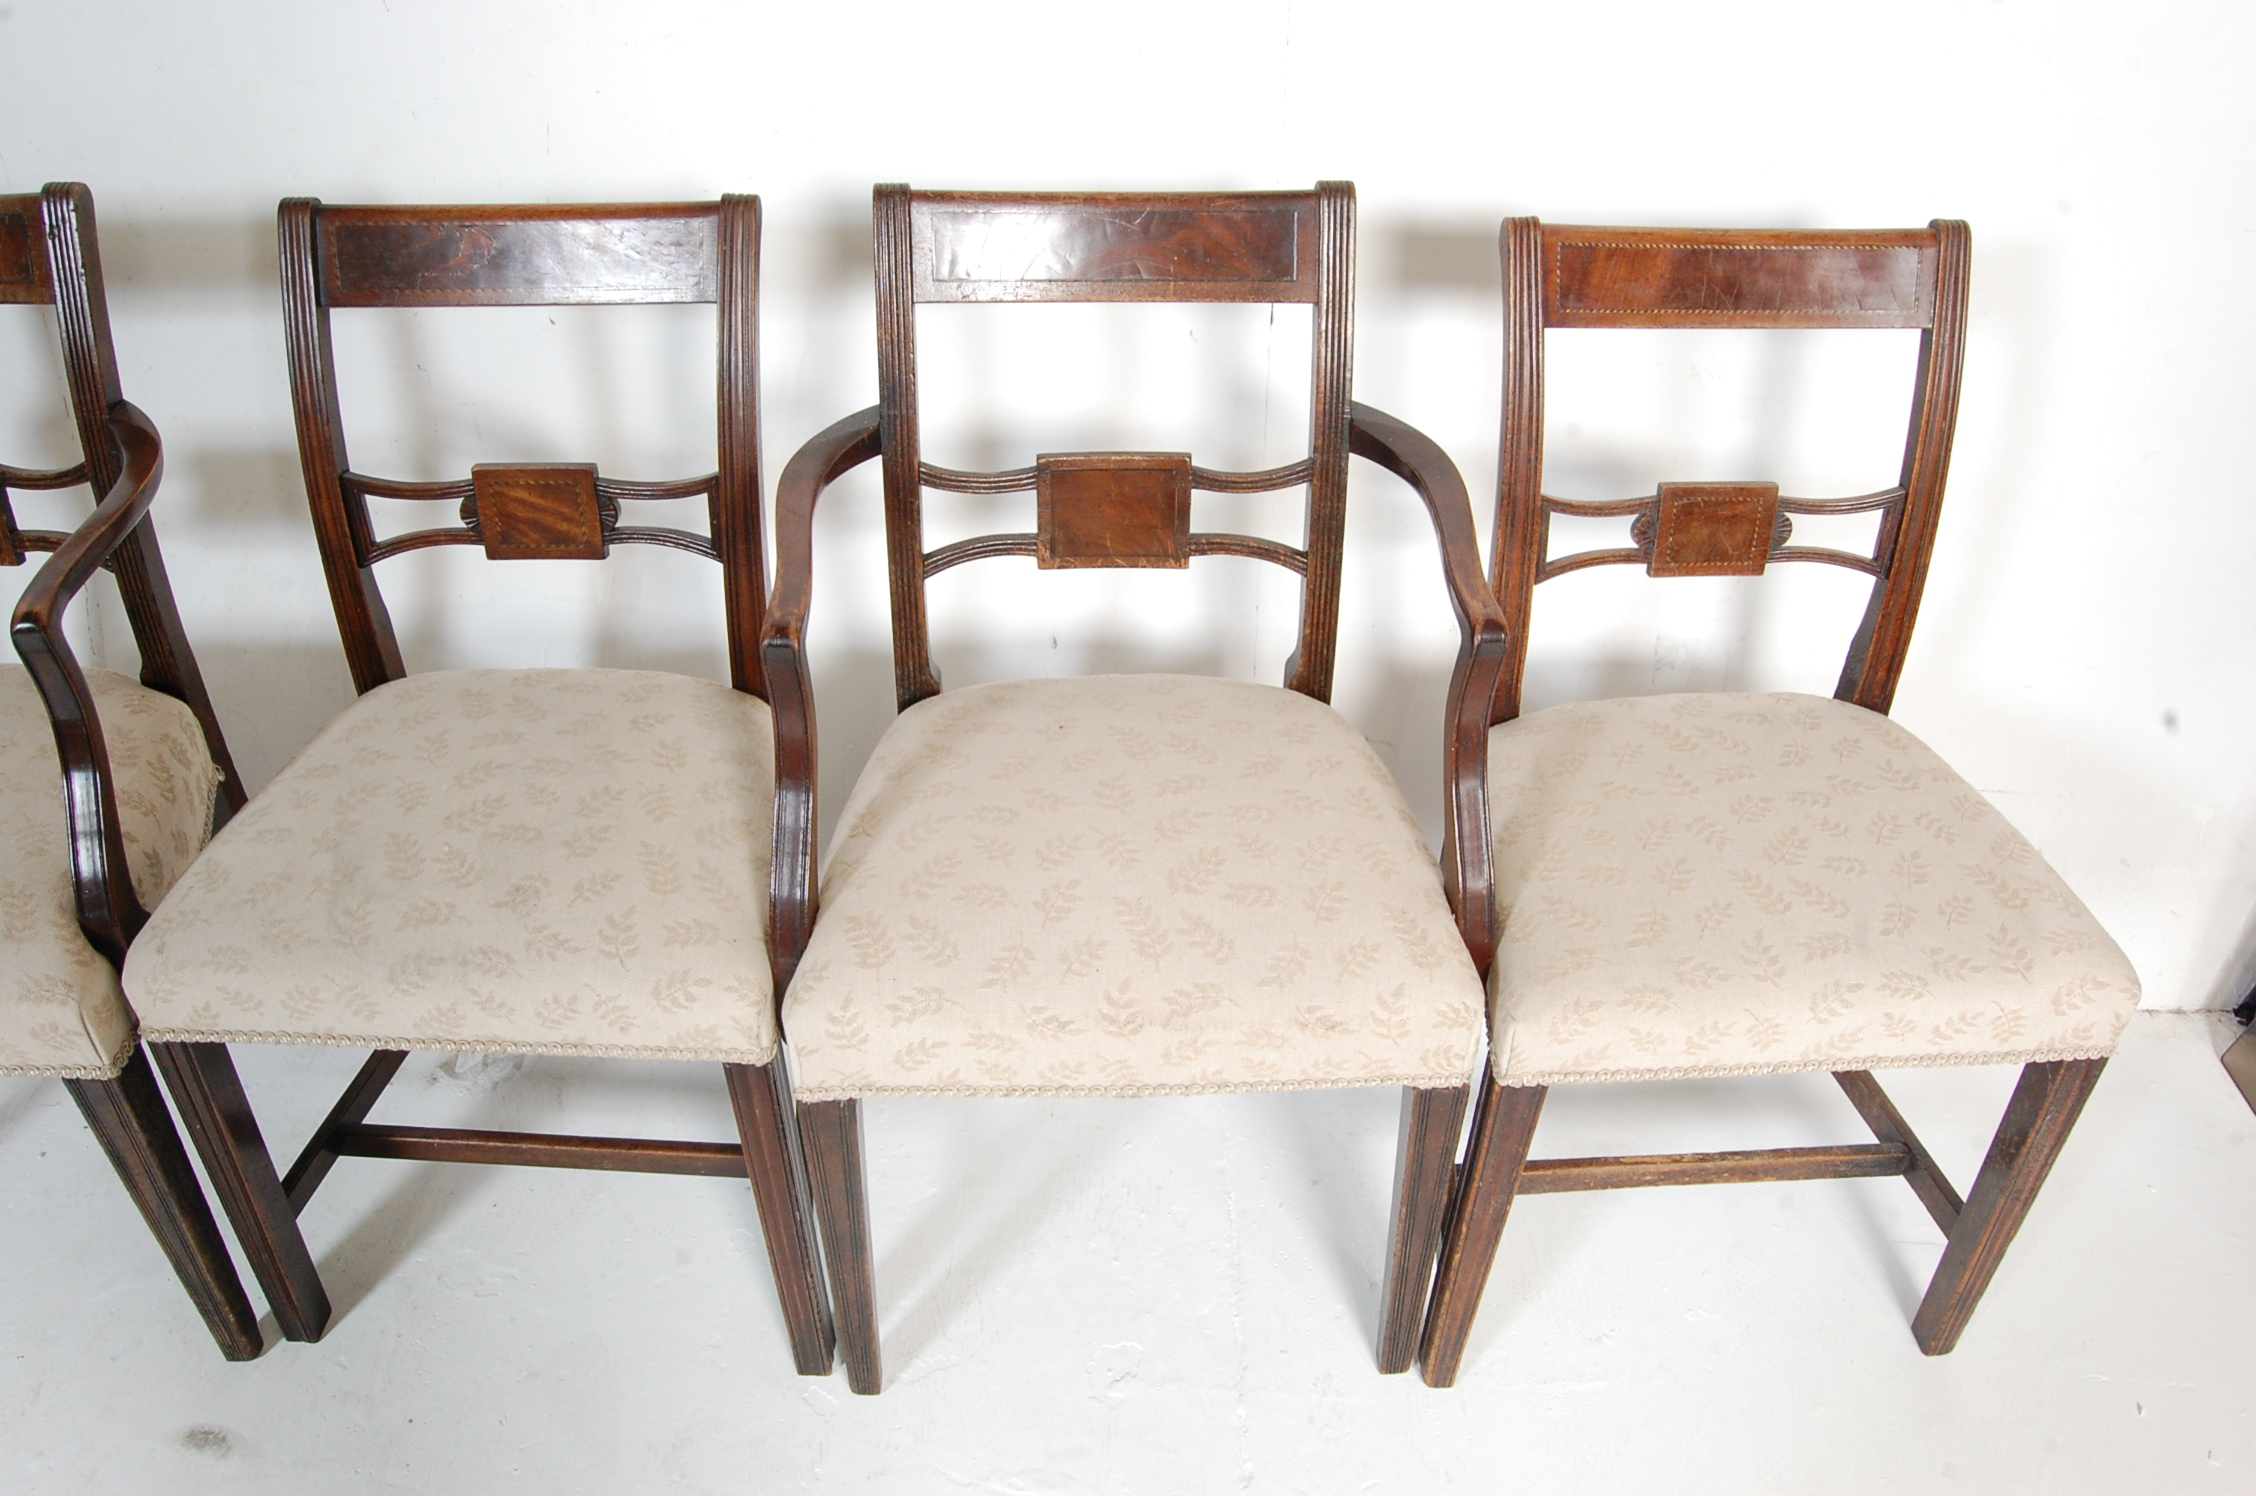 AN ANTIQUE EDWARDIAN REGENCY REVIVAL HARLEQUIN SET OF SIX CHAIRS - Image 4 of 7